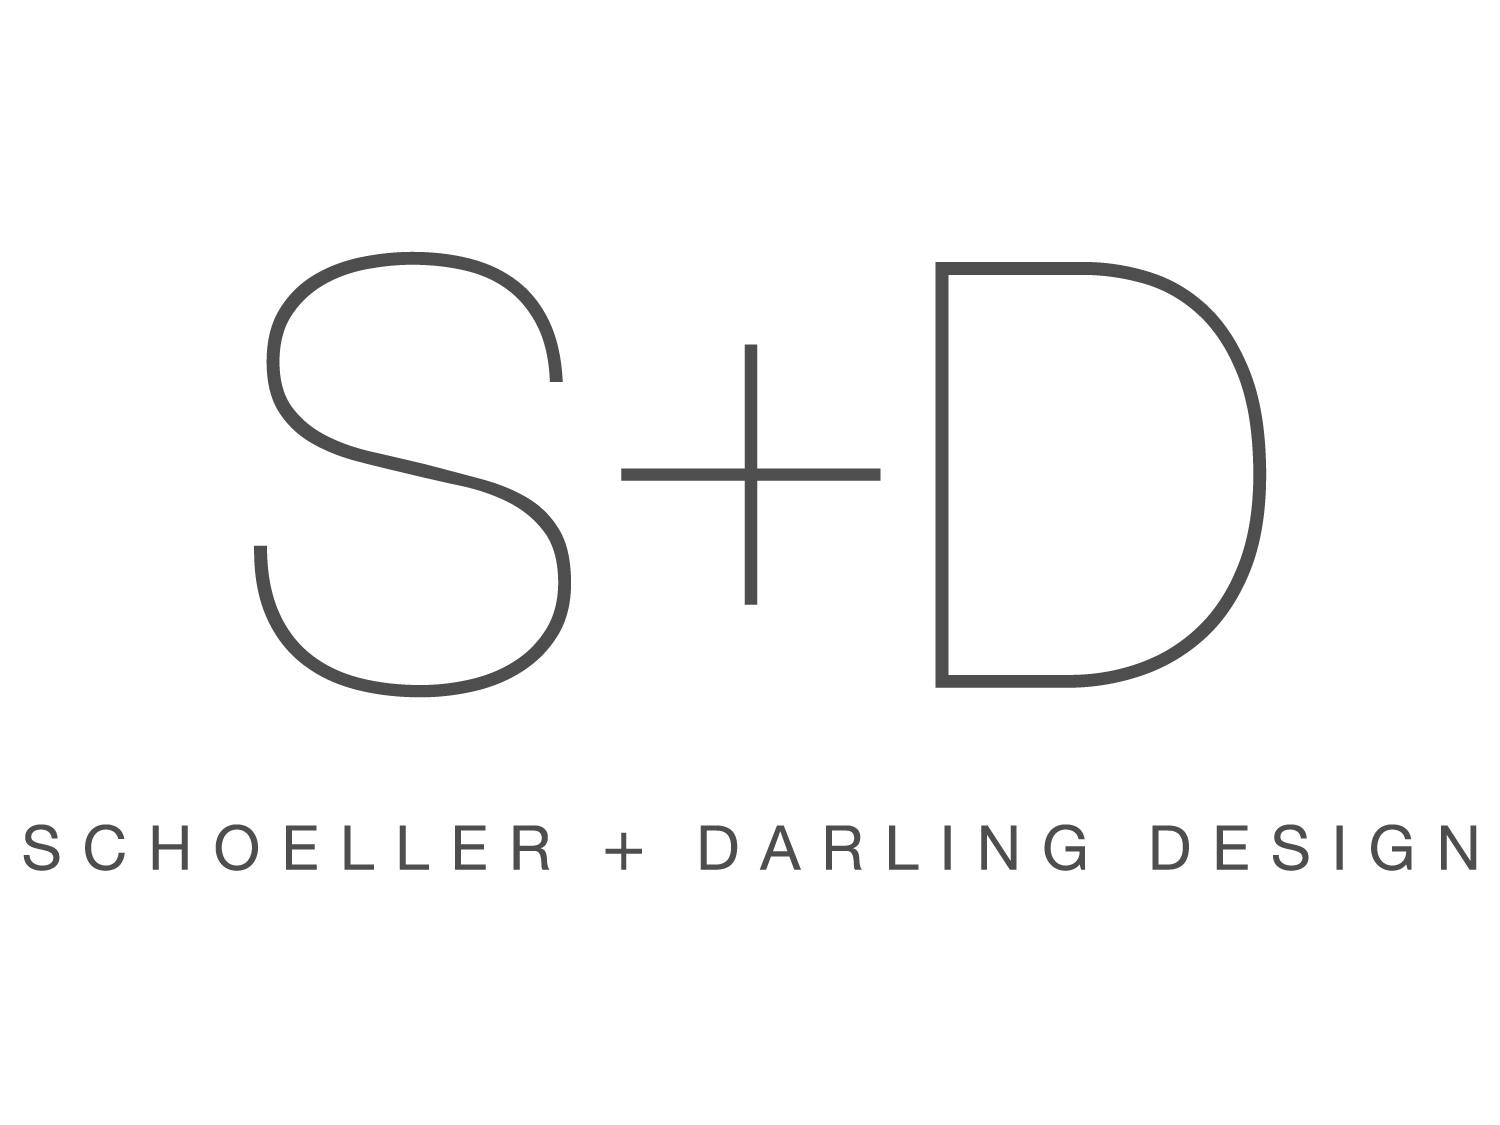 Schoeller + Darling Design